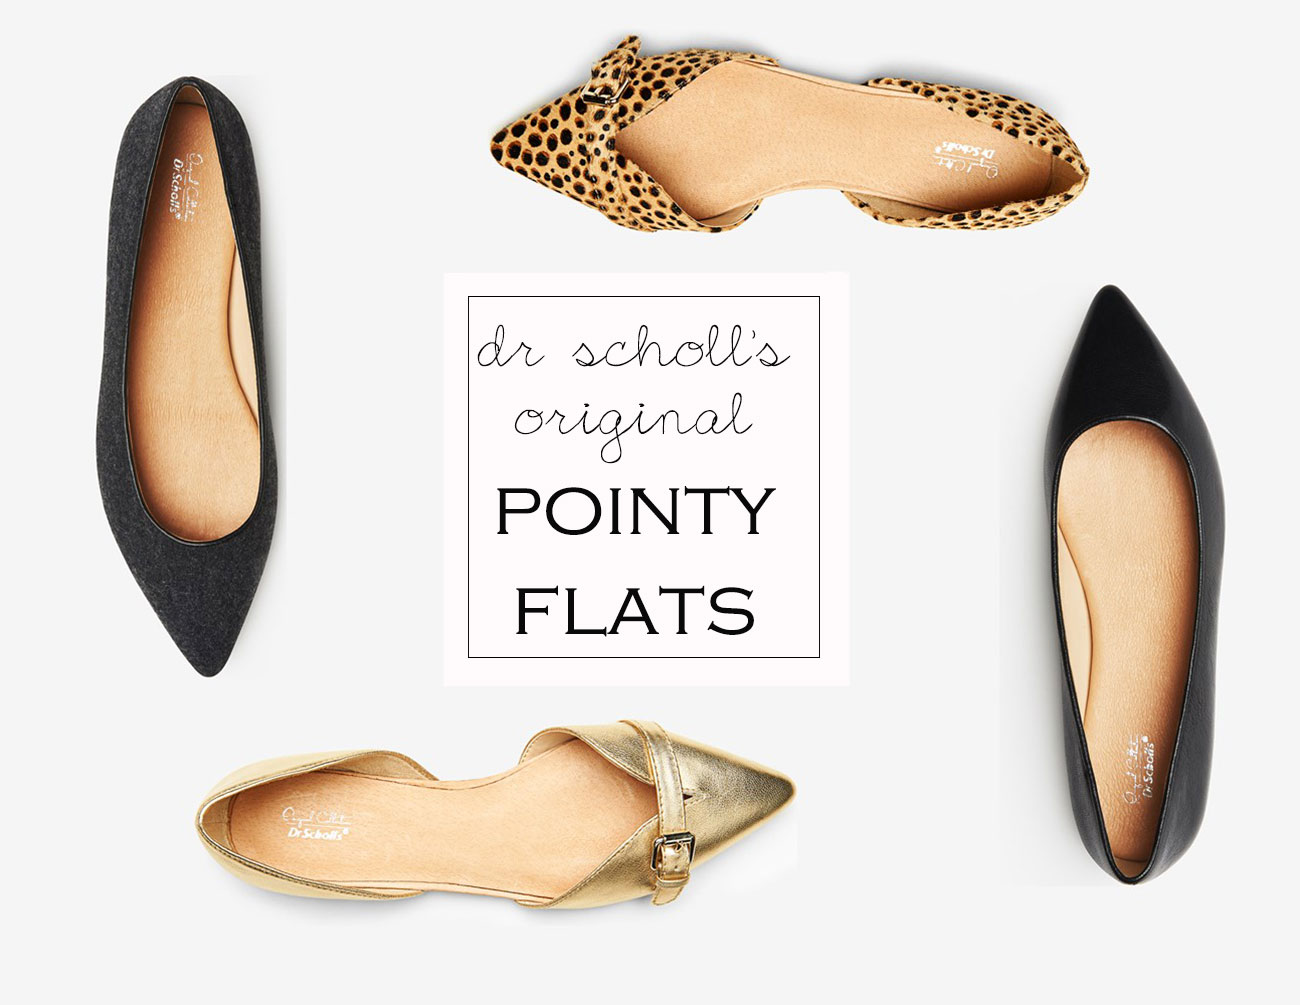 comfy fashionable pointy flats dr scholls original